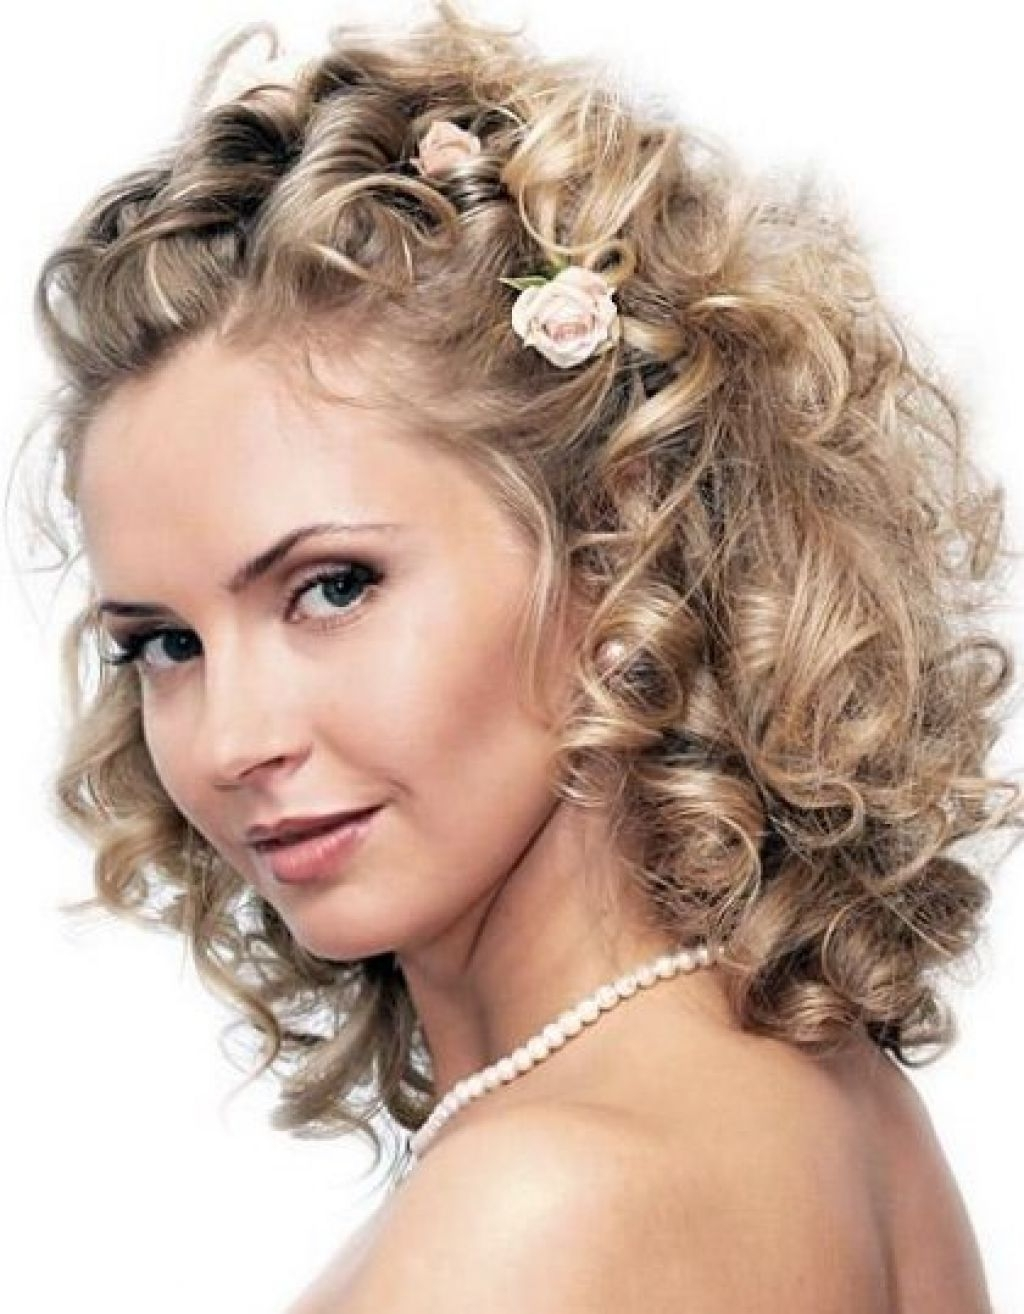 Best Shorturly Hair Wedding Hairstyles Images Under How To Tips And Throughout Most Current Indian Wedding Hairstyles For Short Curly Hair (View 4 of 15)